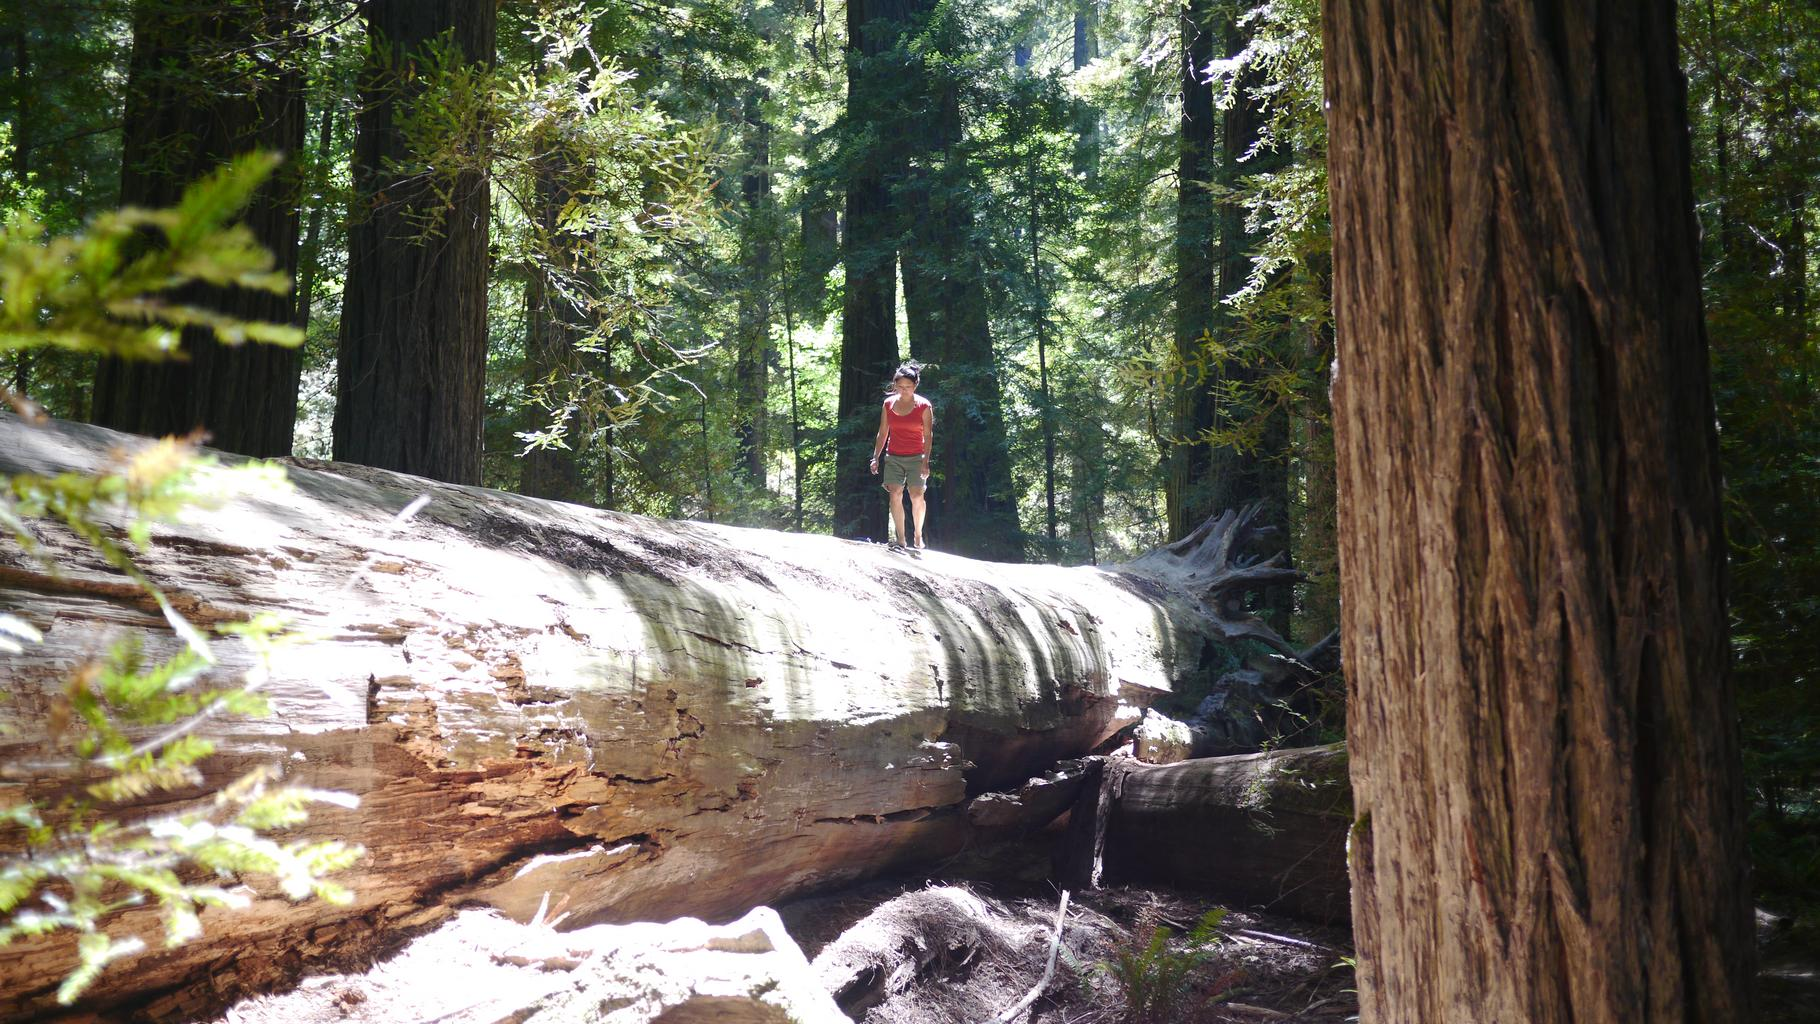 Giant redwood forests in California